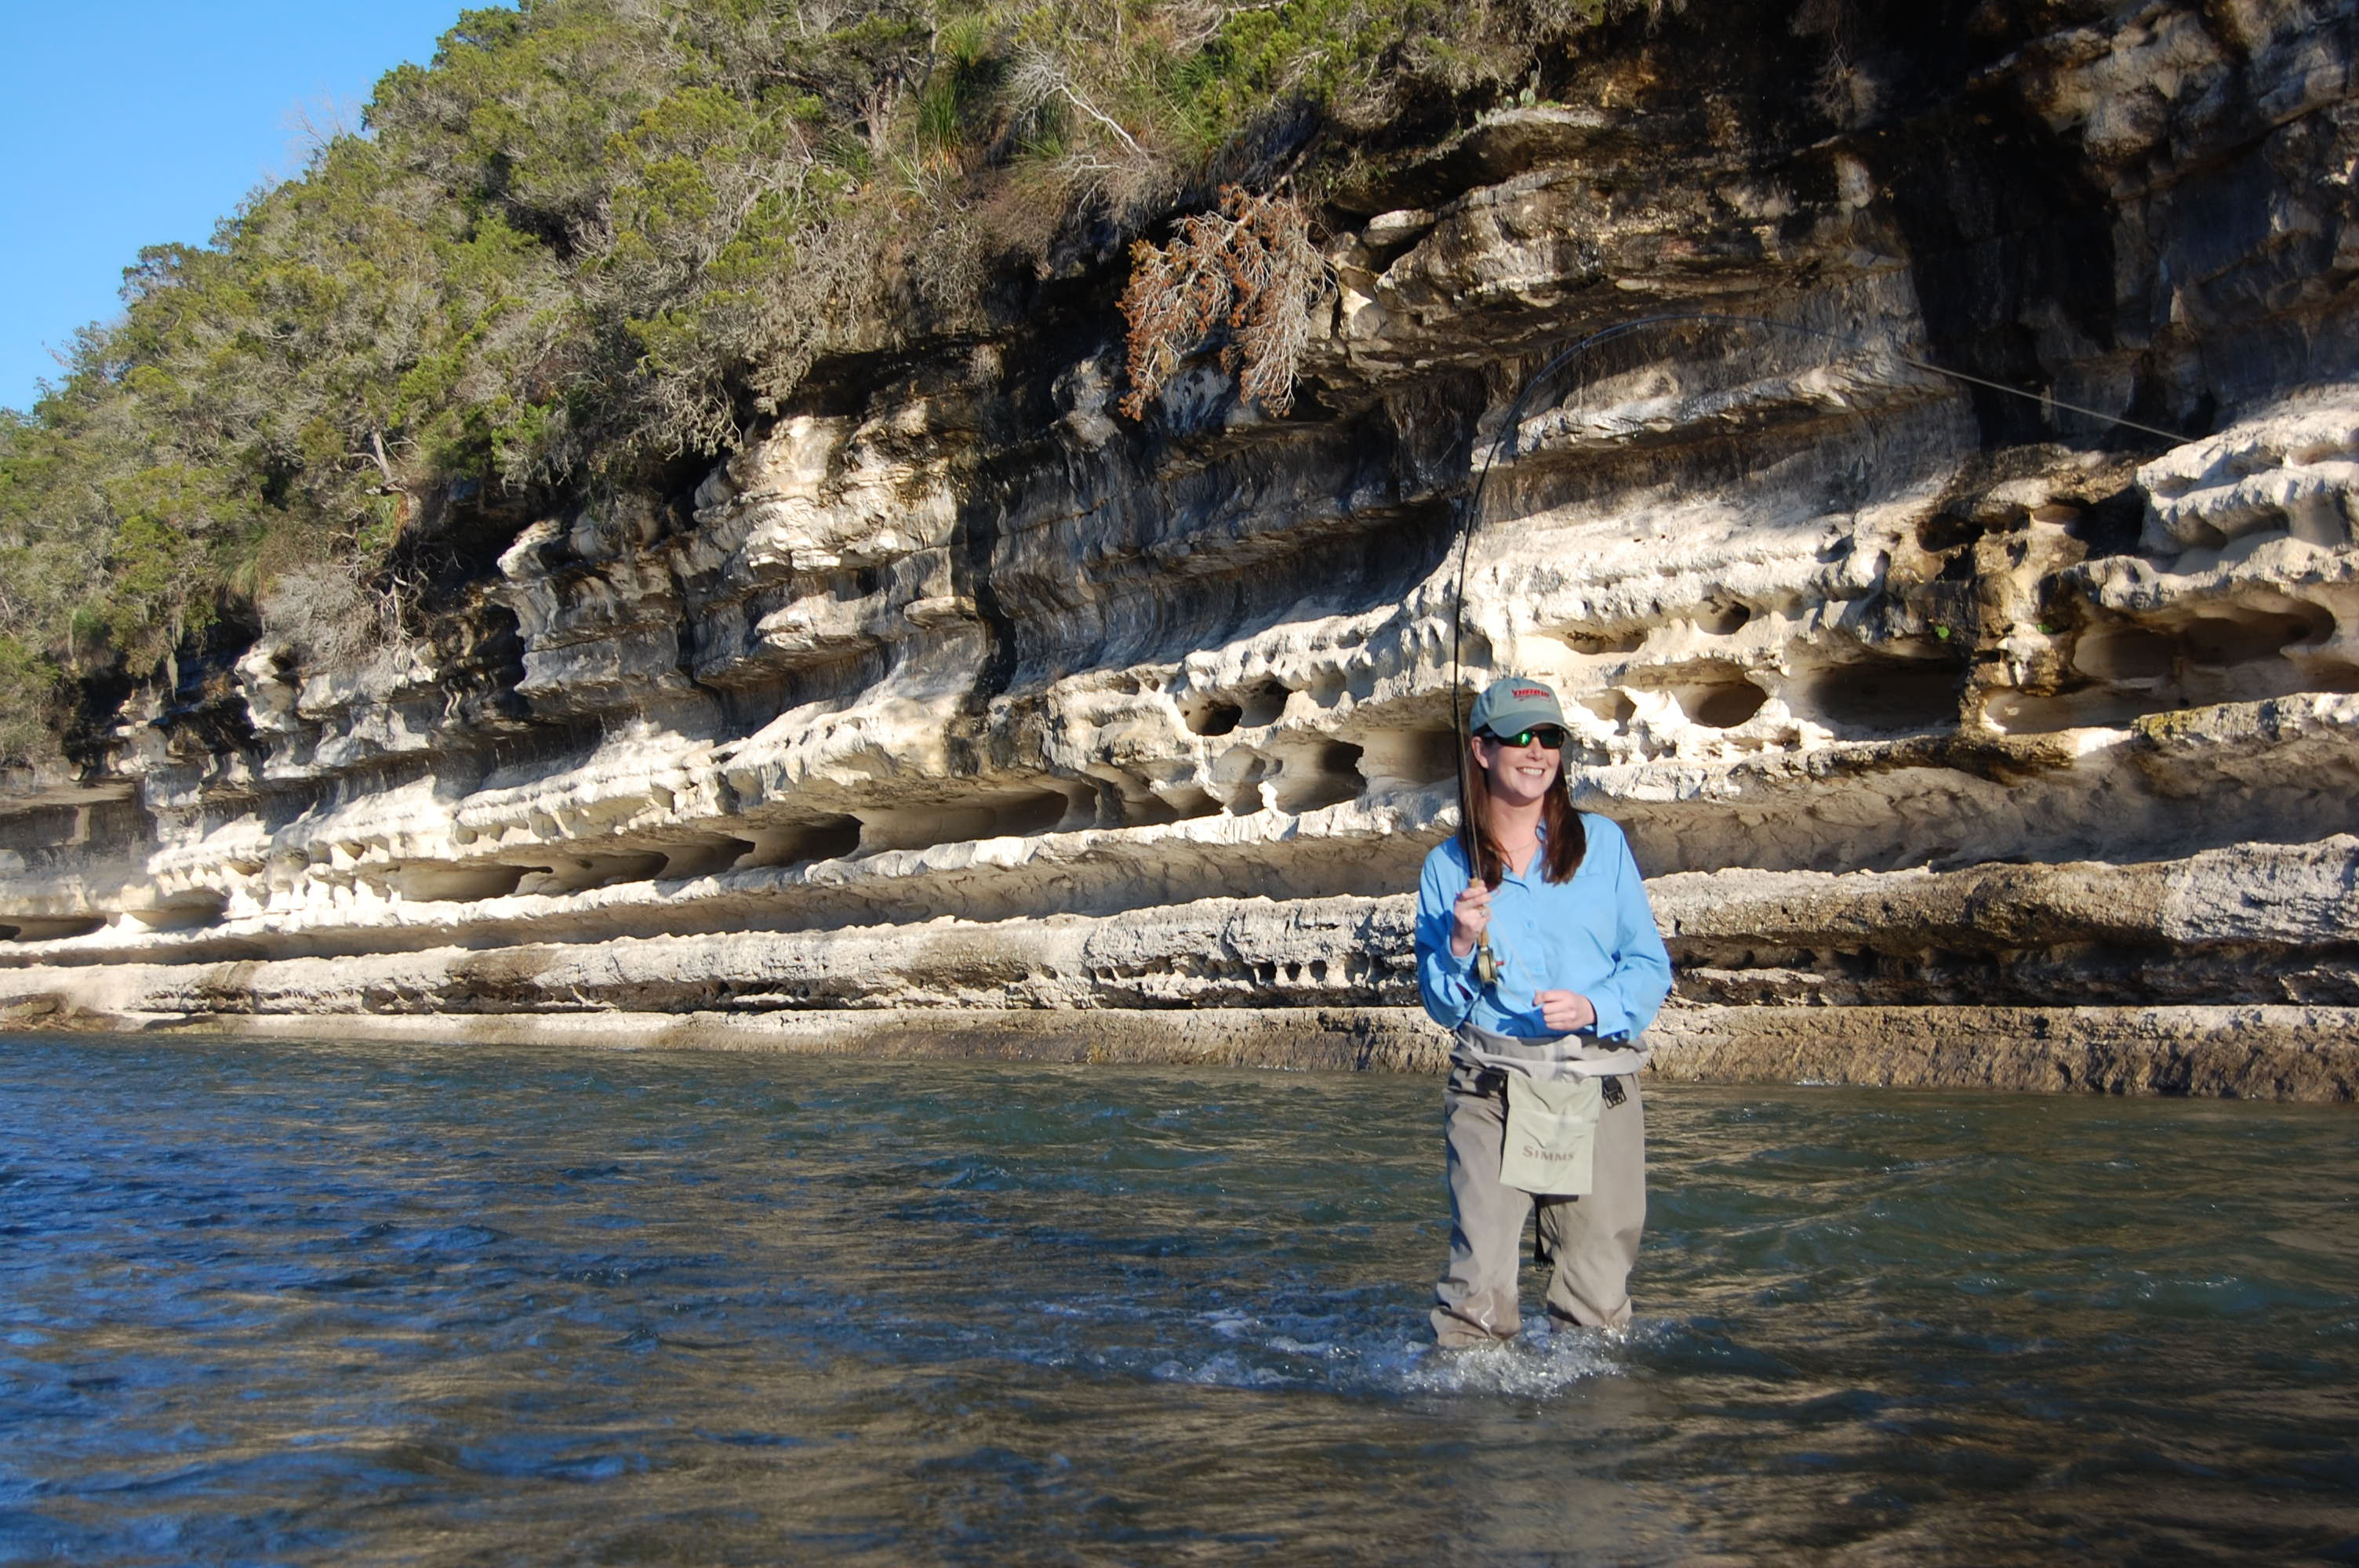 guadalupe fishing guide fly fishing austin san antonio